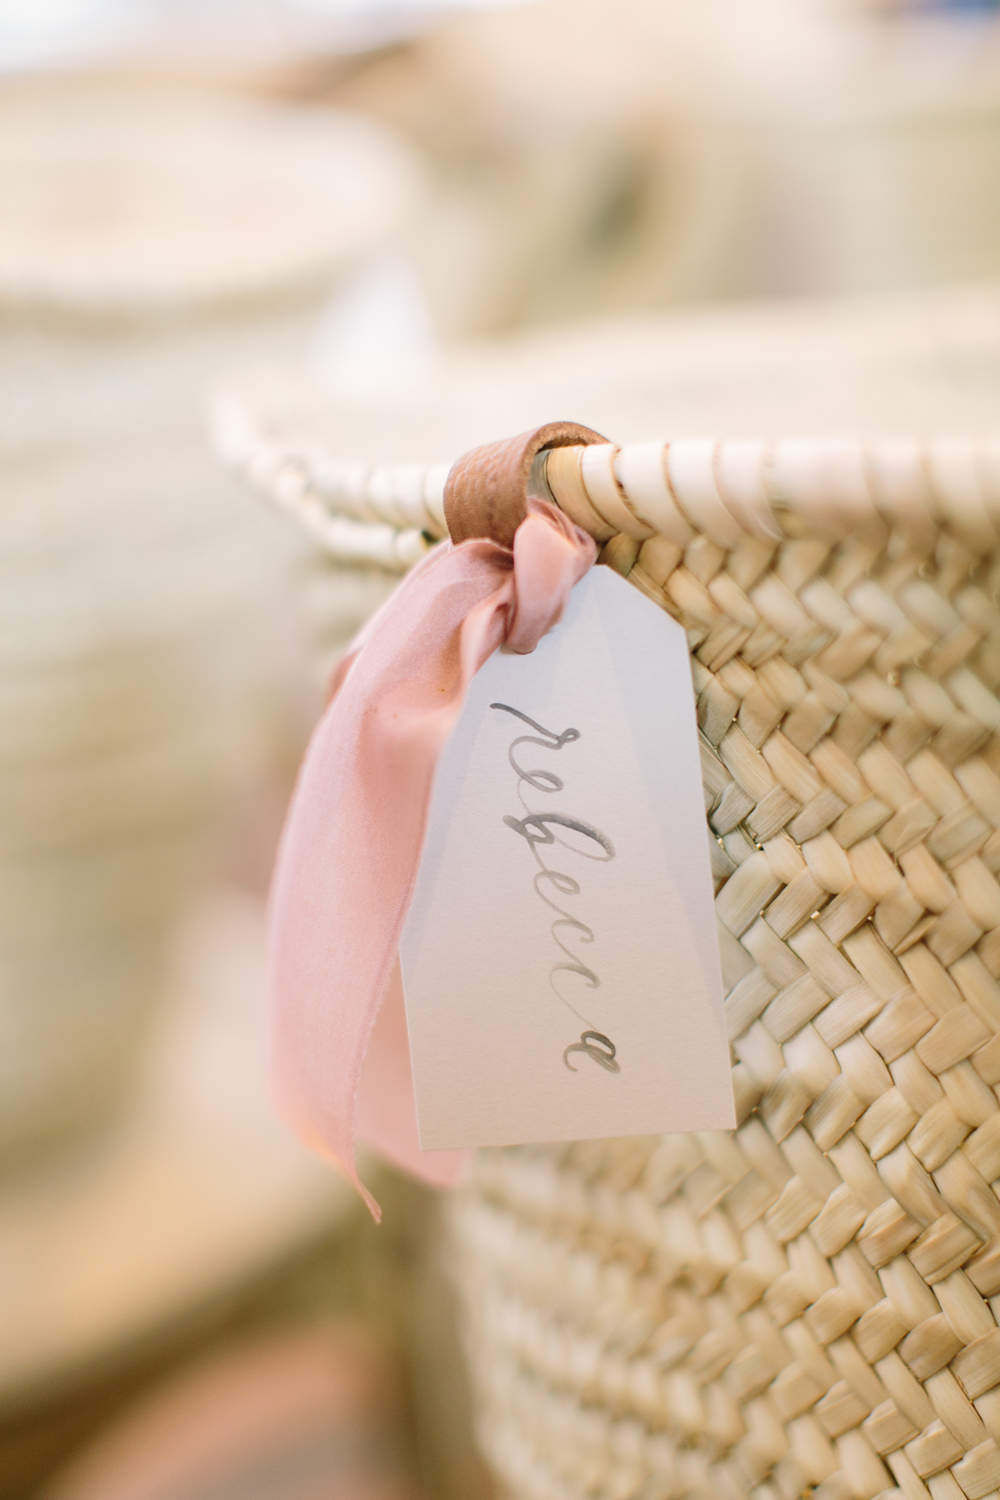 Ribbon-nametag-gift basket-wicker basket-calligraphy-blush-